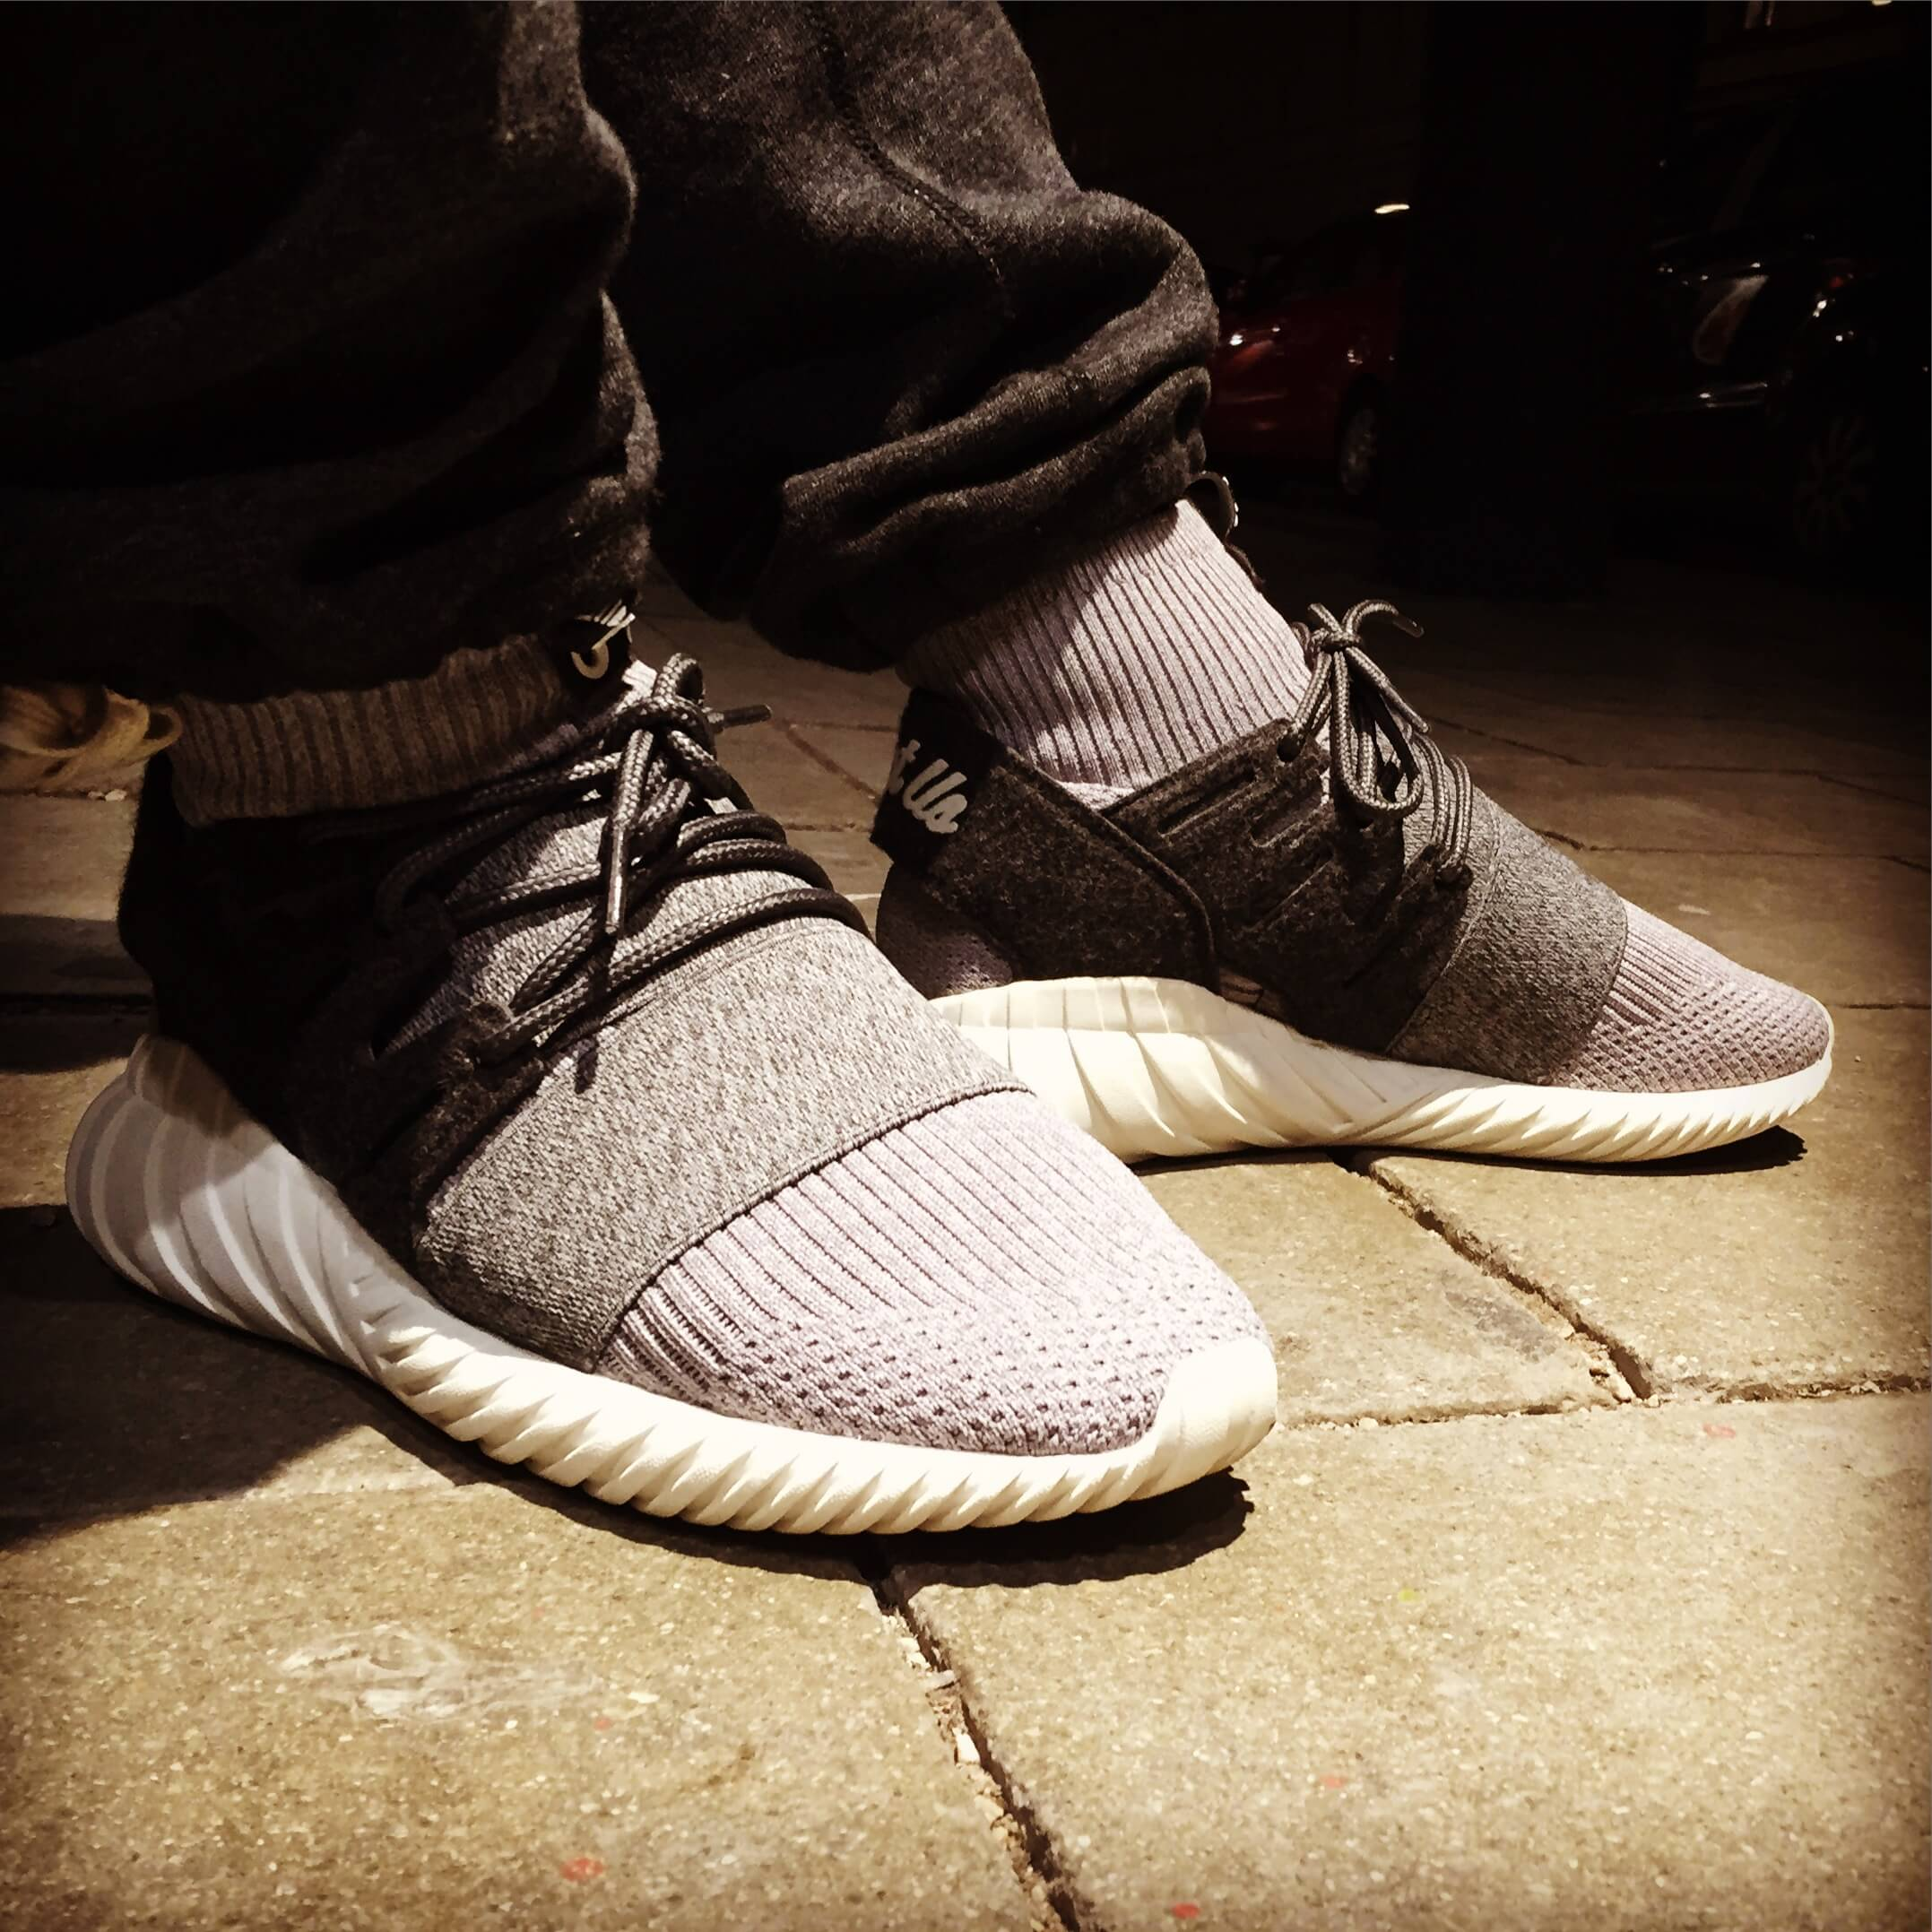 KITH-Adidas-Tubular-Doom-Side-View-Benstah-Onfeet